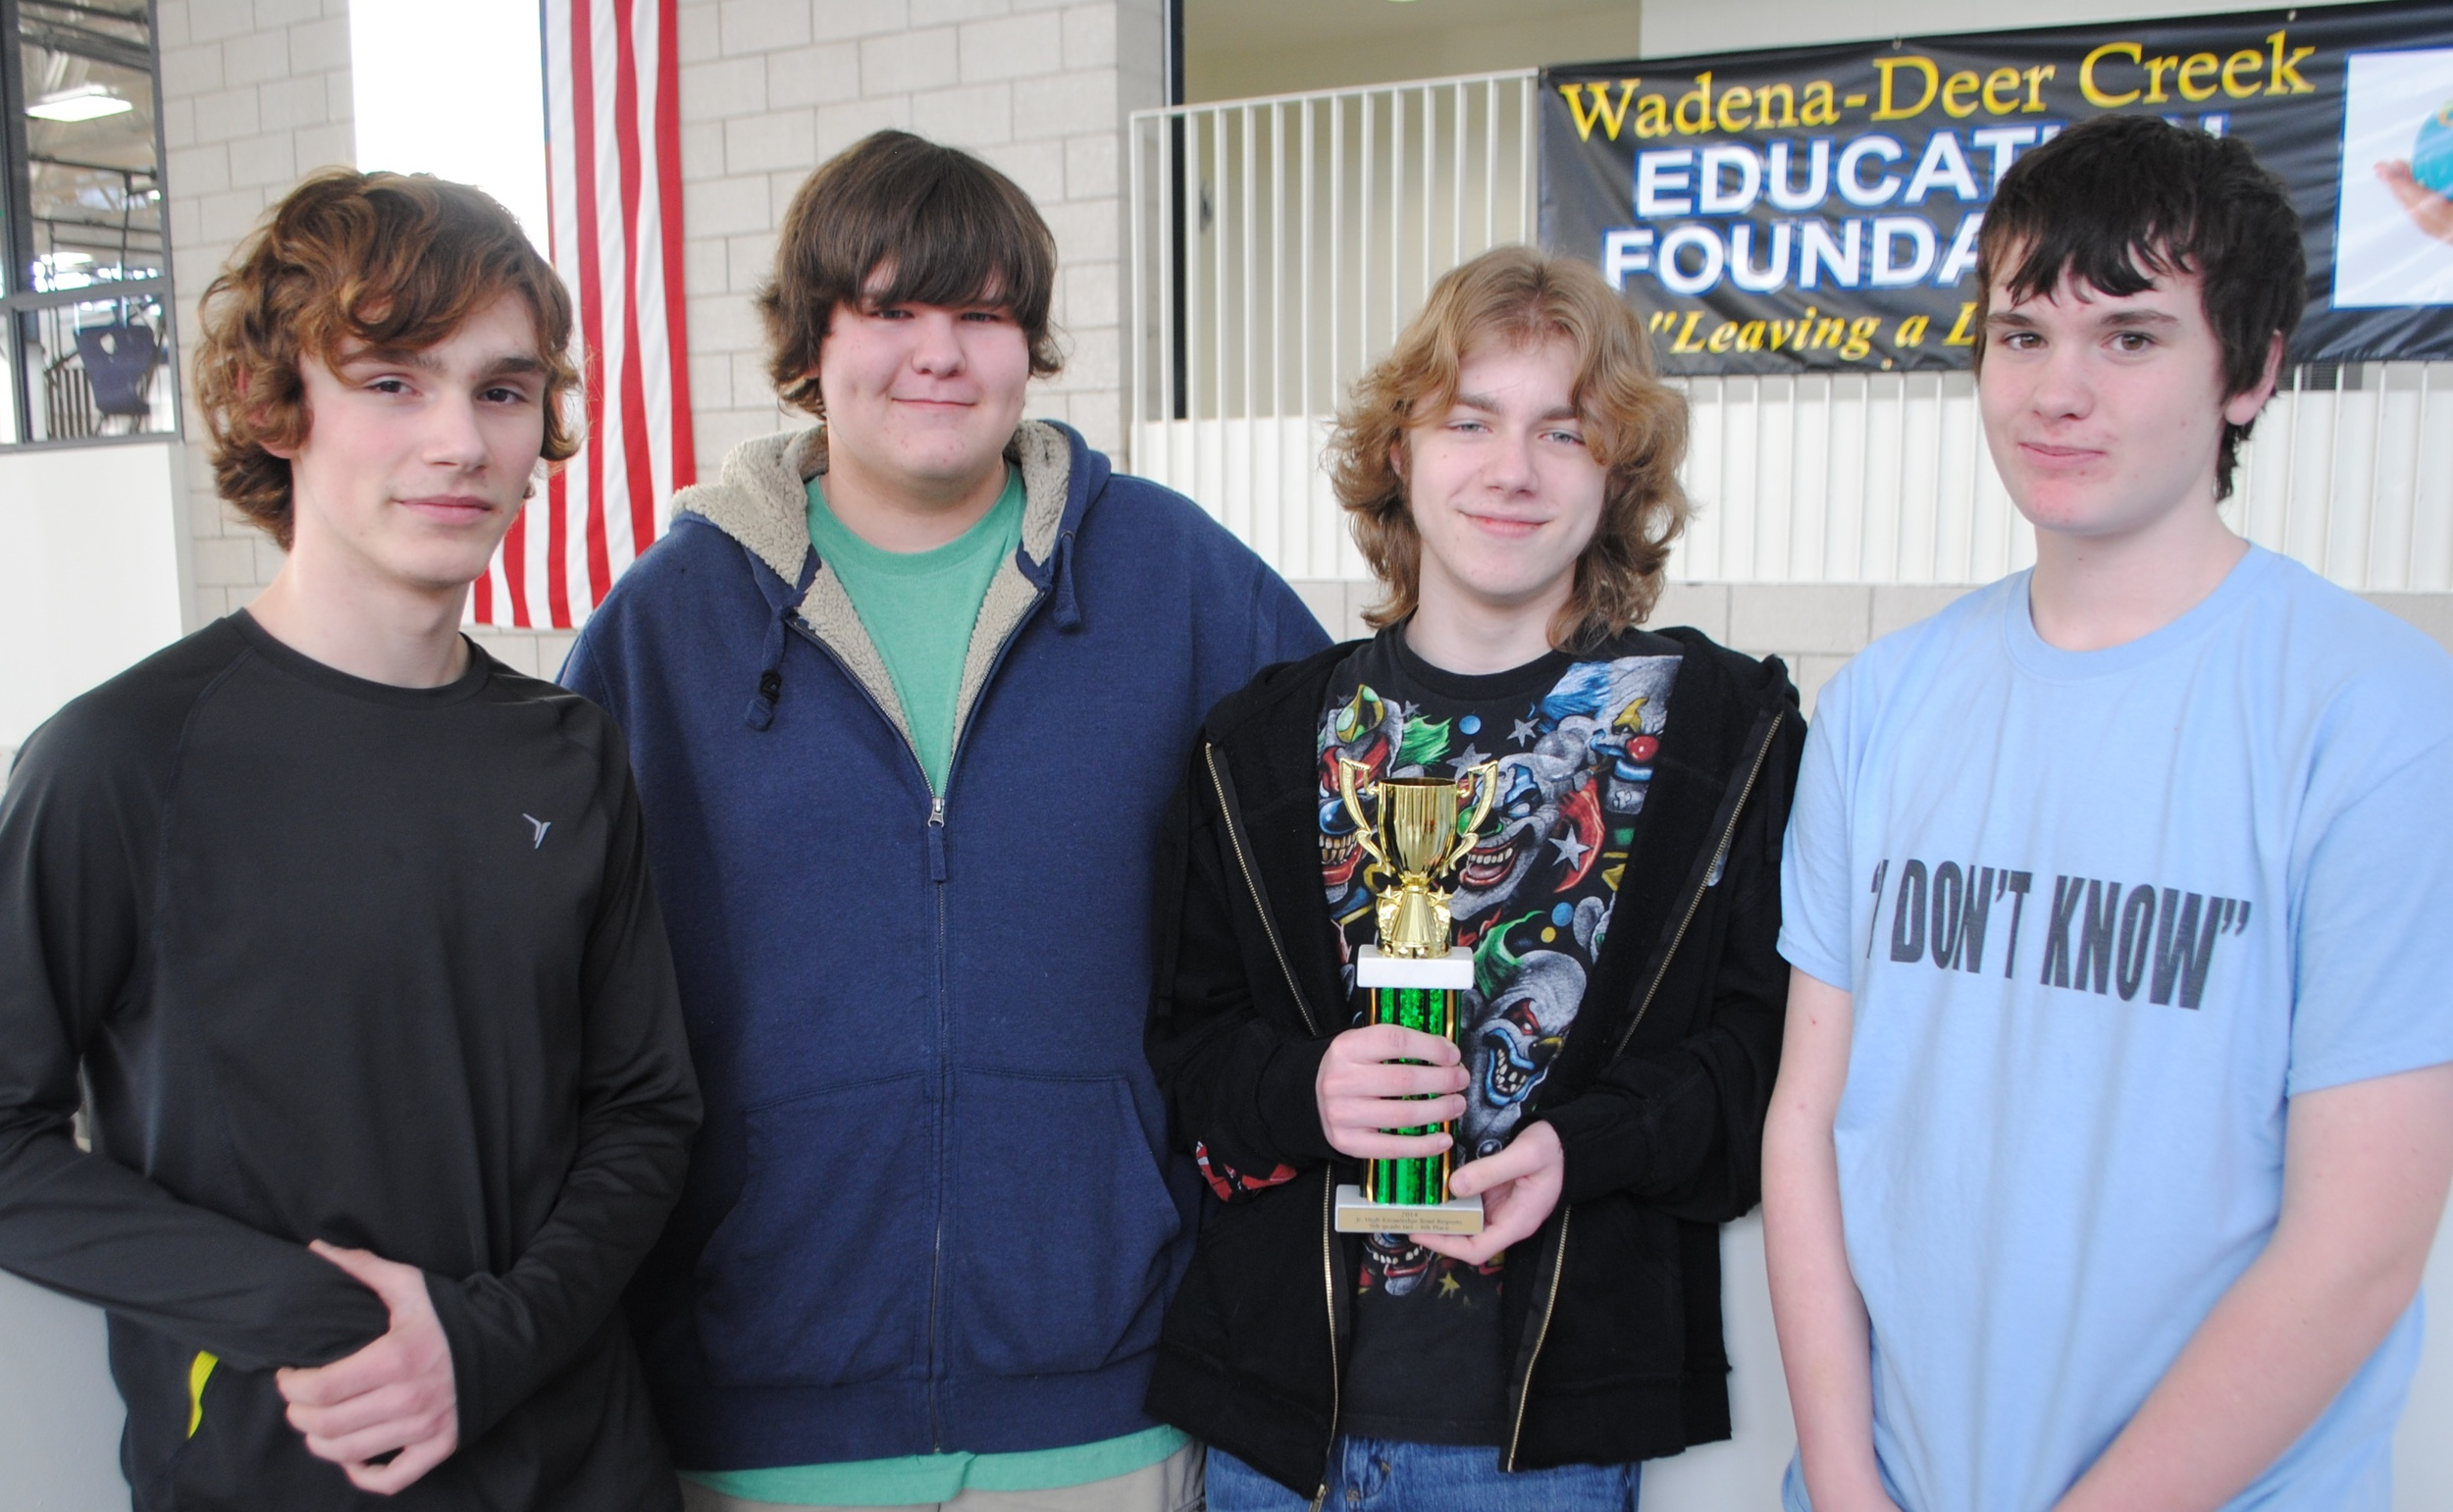 The WDC Wolverines team of Tyler Scott, Derek Plautz, Logan Taggart and Andrew McCullough placed fourth in the academic quiz fest in Staples recently. (Photo by Dana Pavek, WDC Schools)